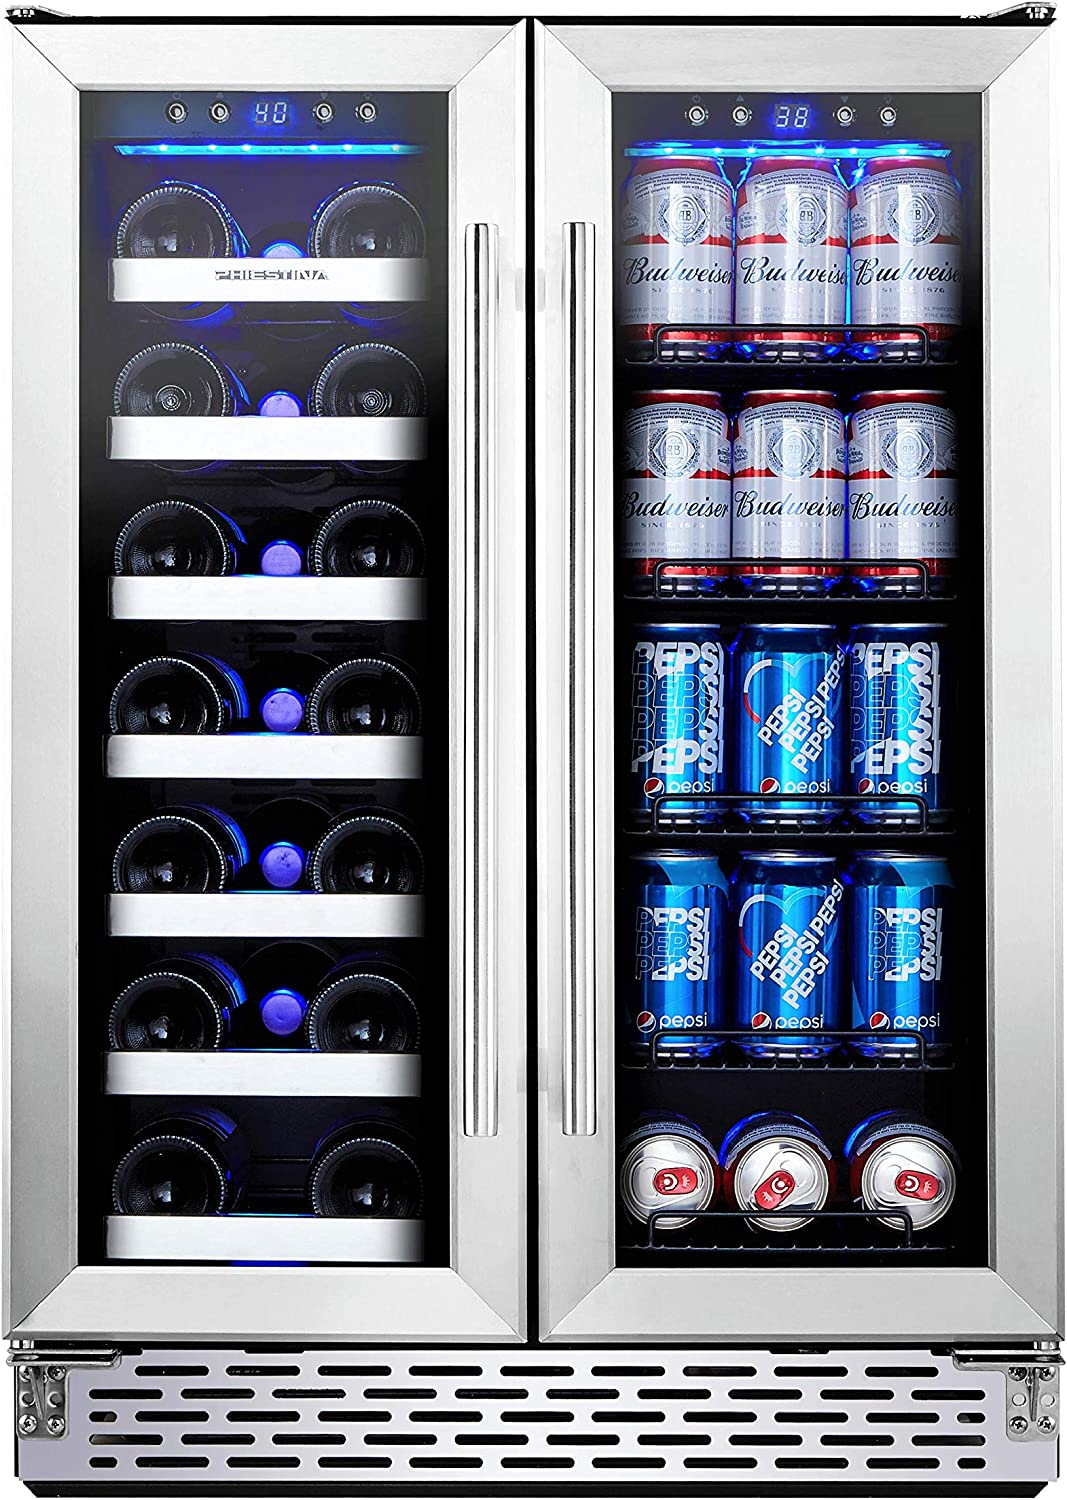 Phiestina Wine And Beverage Refrigerator 24 Inch Built In Dual Zone Wine Beer Cooler Refrigerator Free Standing French Door Drink Fridge With Digital Memory Temperature Control Appliances